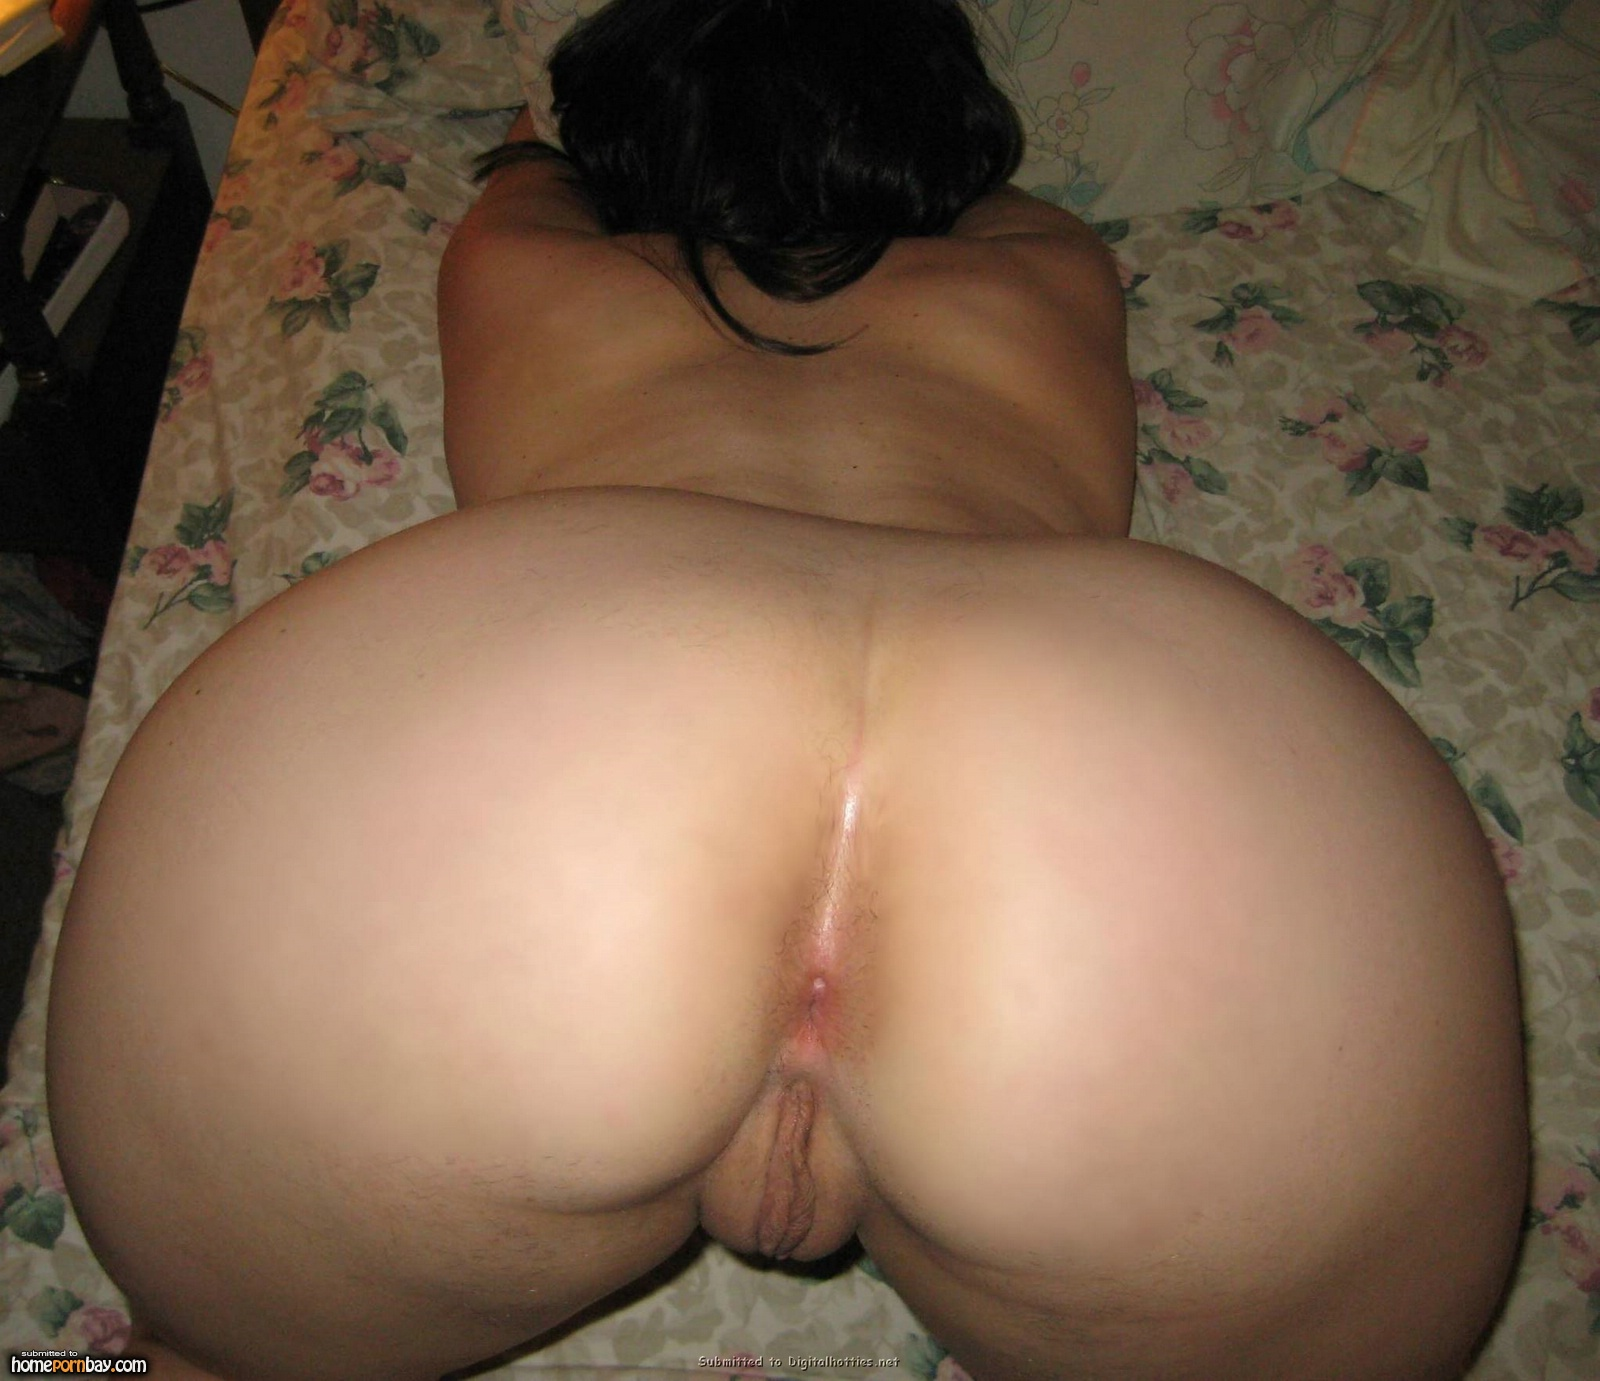 Big ass wife photos